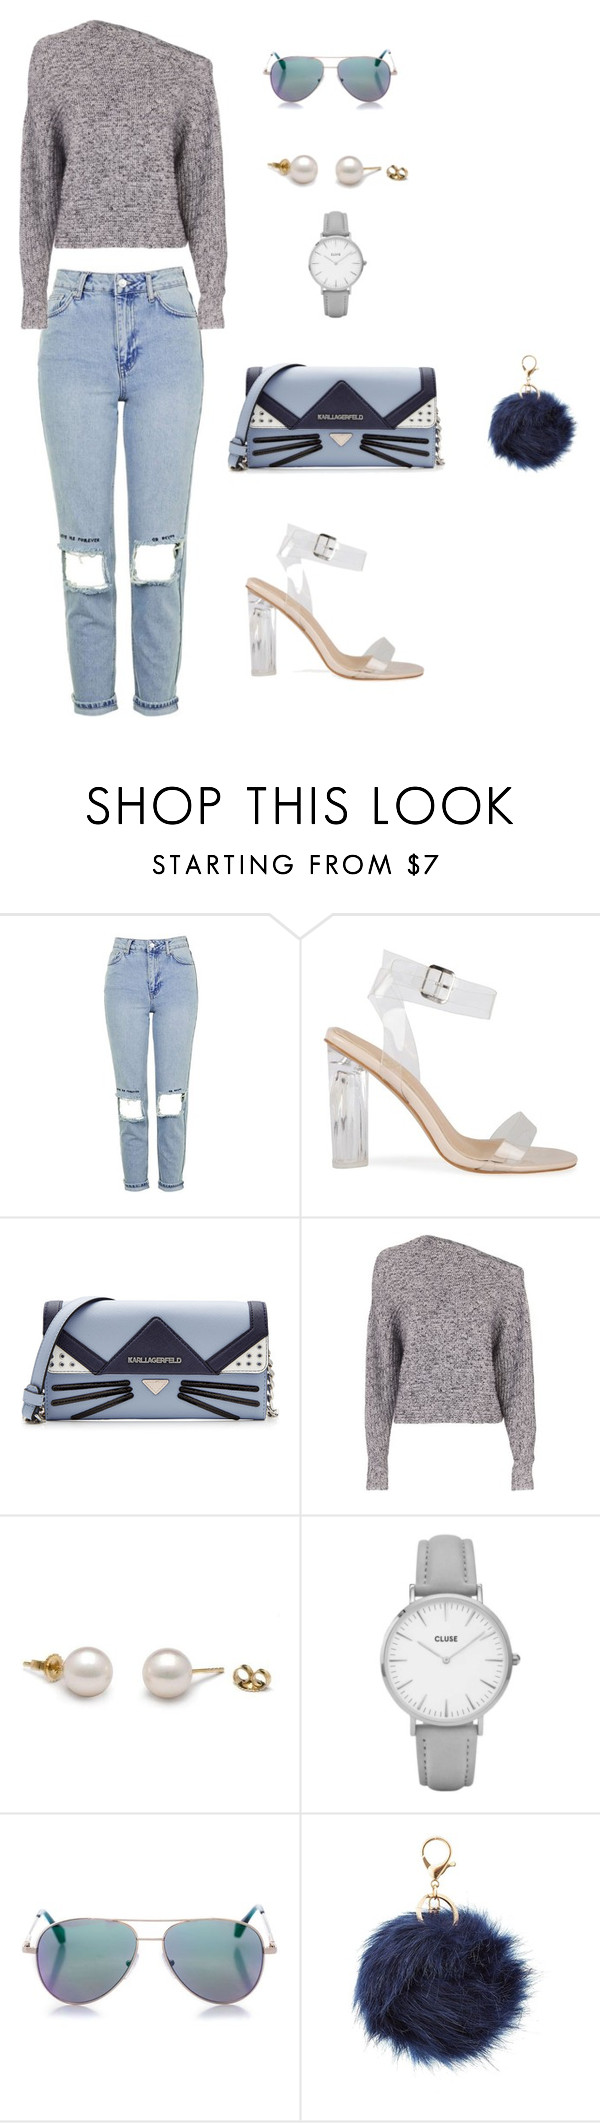 """""""young and chic"""" by kduffy-1 on Polyvore featuring Topshop, Karl Lagerfeld, T By Alexander Wang, Cutler and Gross and Charlotte Russe"""